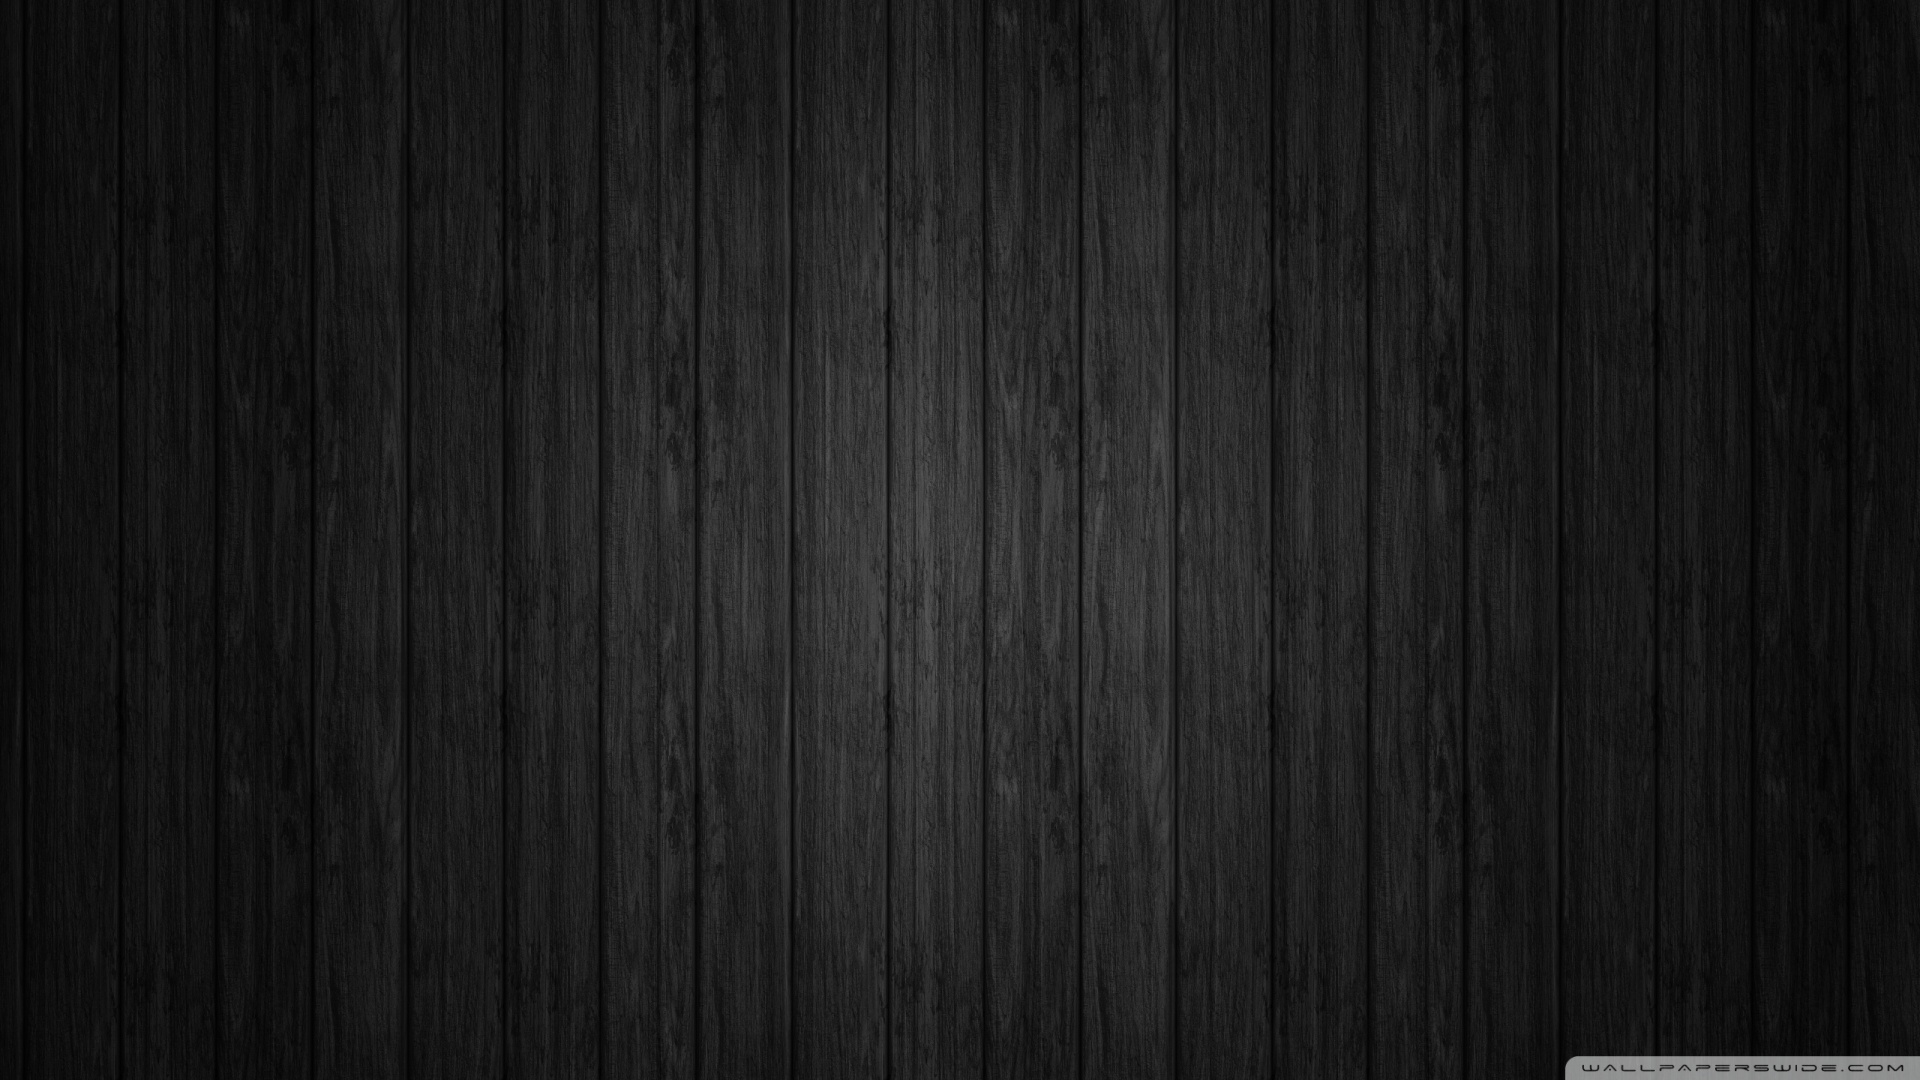 Black wallpaper | 1920x1080 | #77900